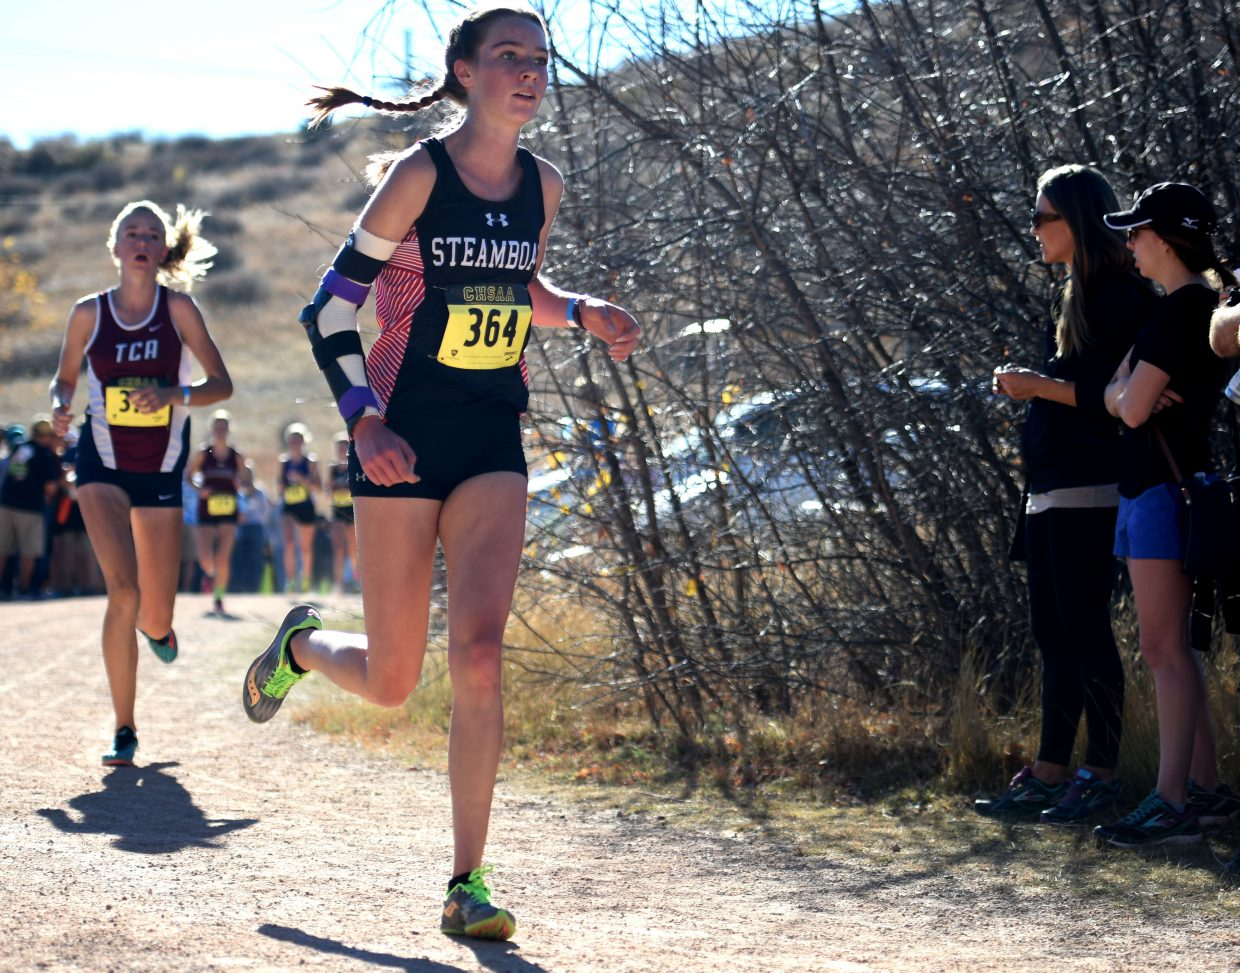 Steamboat sophomore Winter Boese runs Saturday at the Class 3A state cross country meet in Colorado Springs. Boese finished seventh, leading the way for a fourth-place overall finish for the Sailors' girls team.